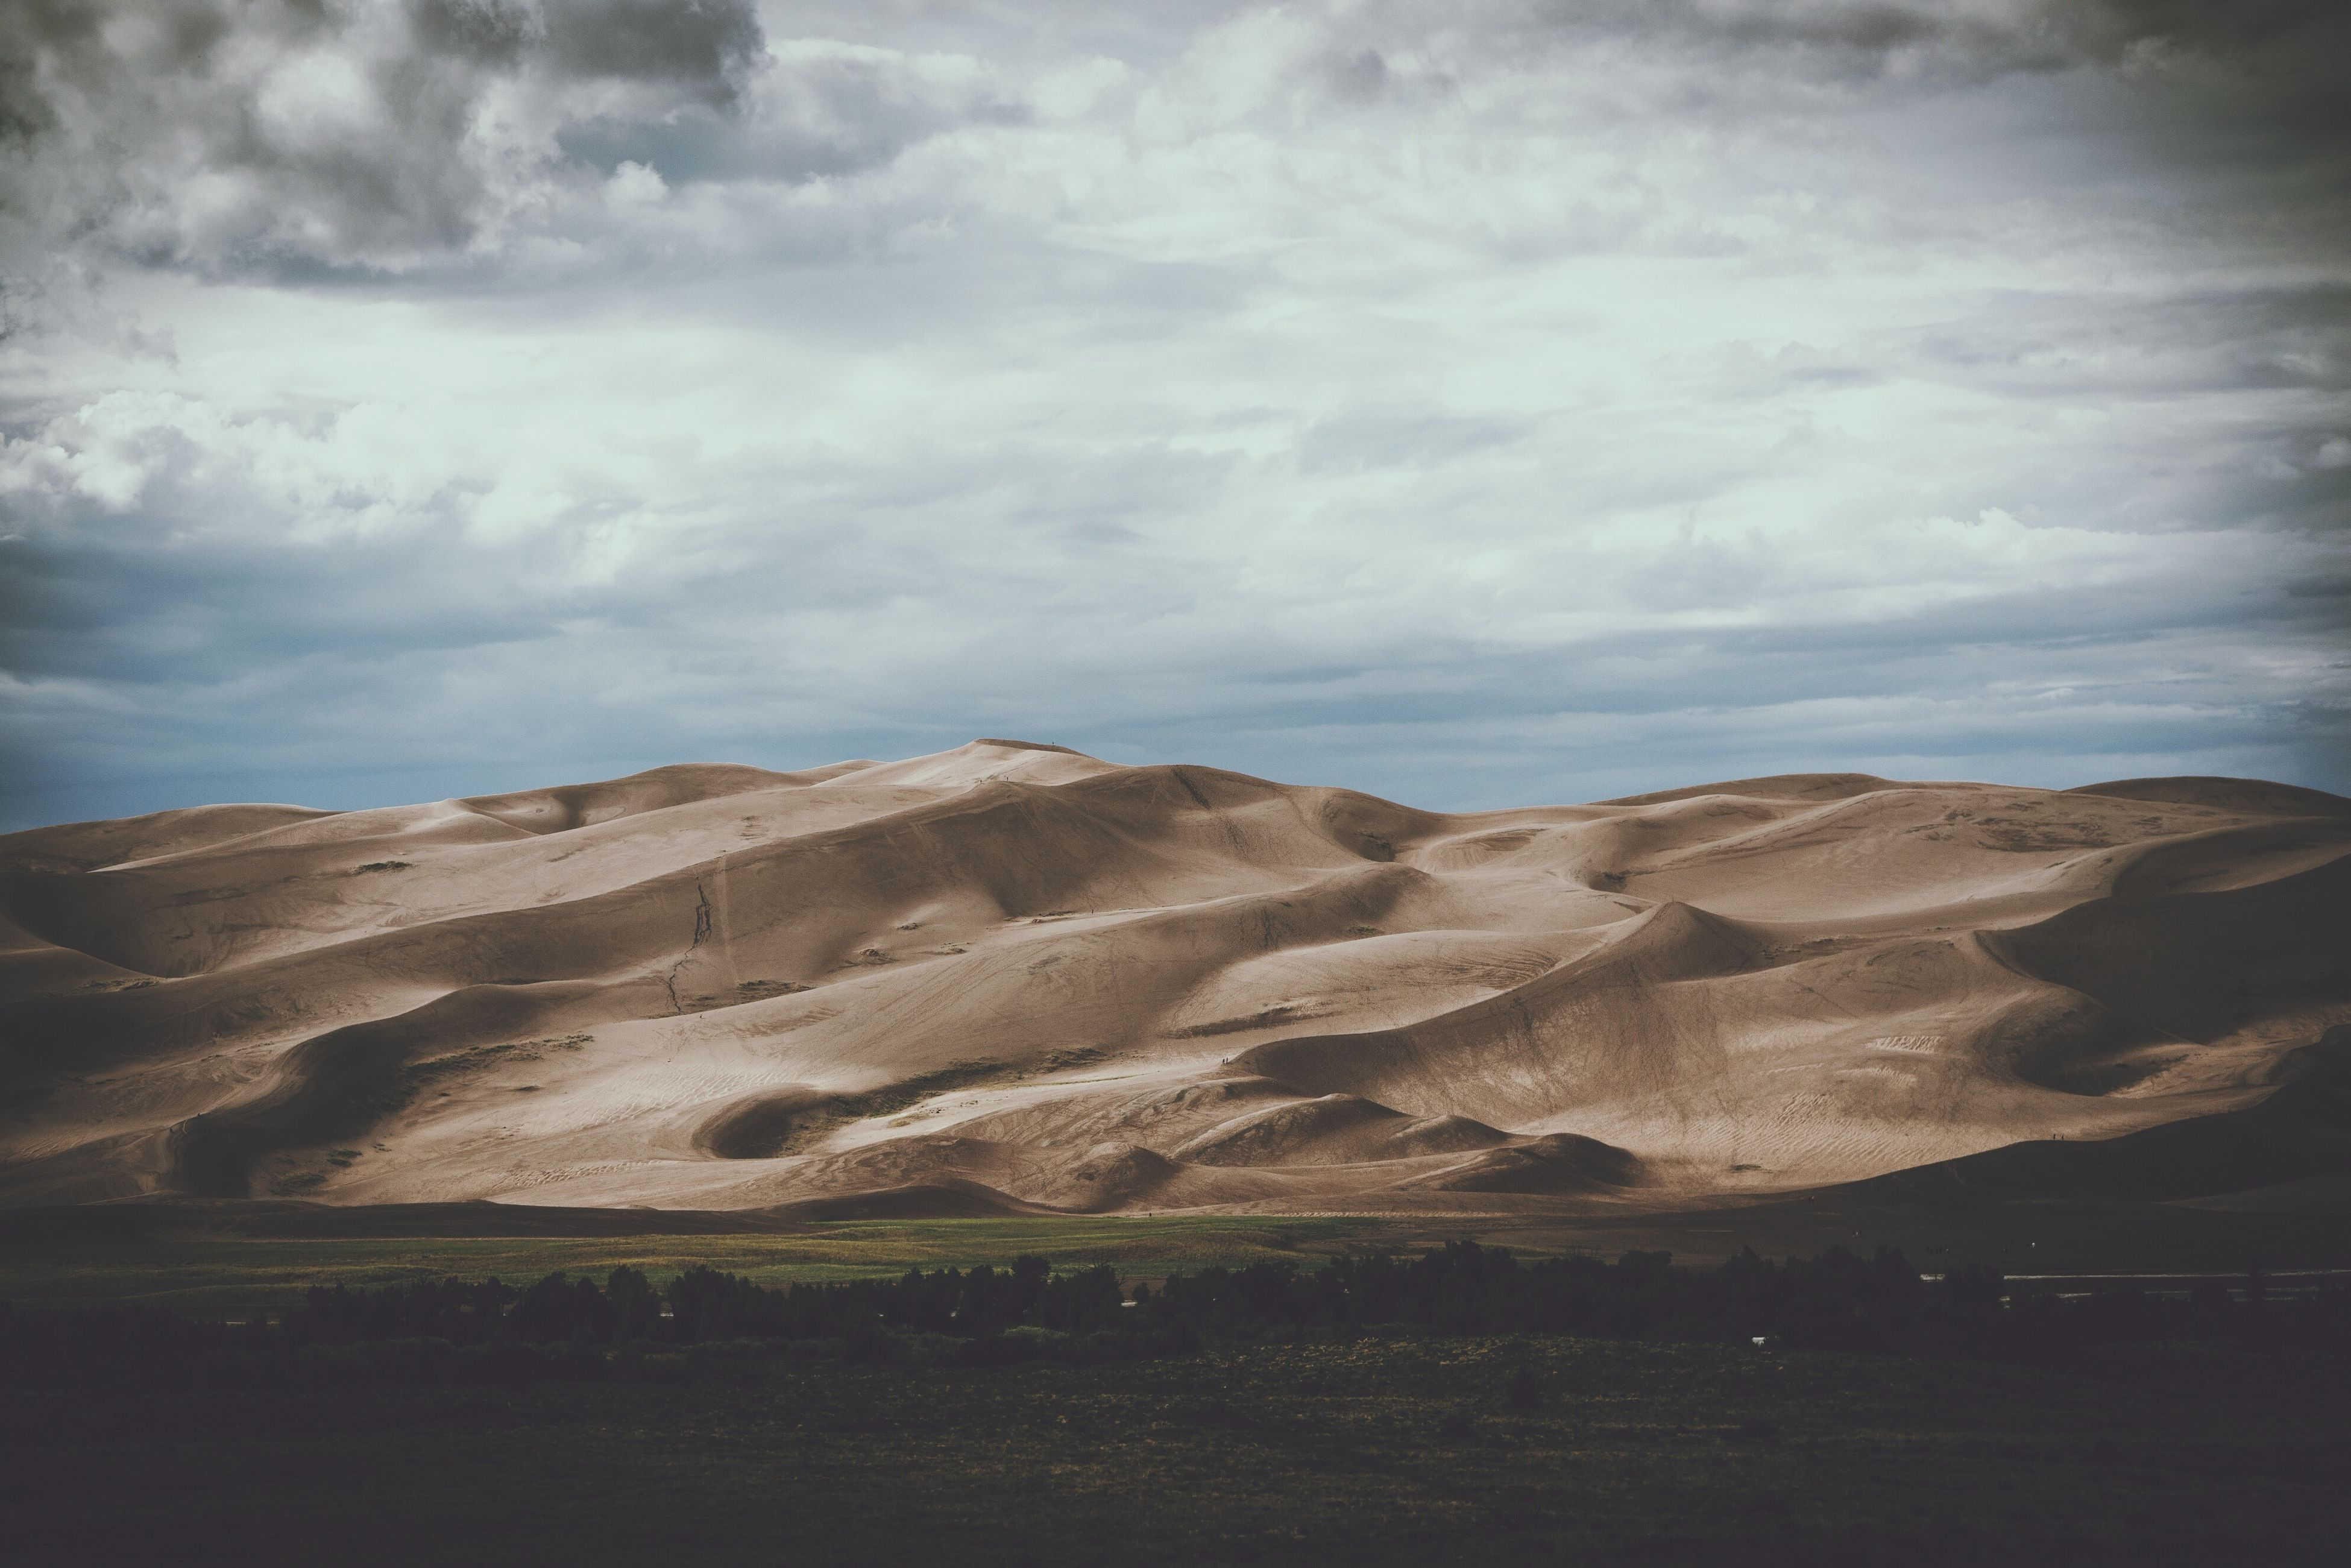 nature, sand, sky, sand dune, tranquility, landscape, no people, scenics, beauty in nature, day, tranquil scene, cloud - sky, outdoors